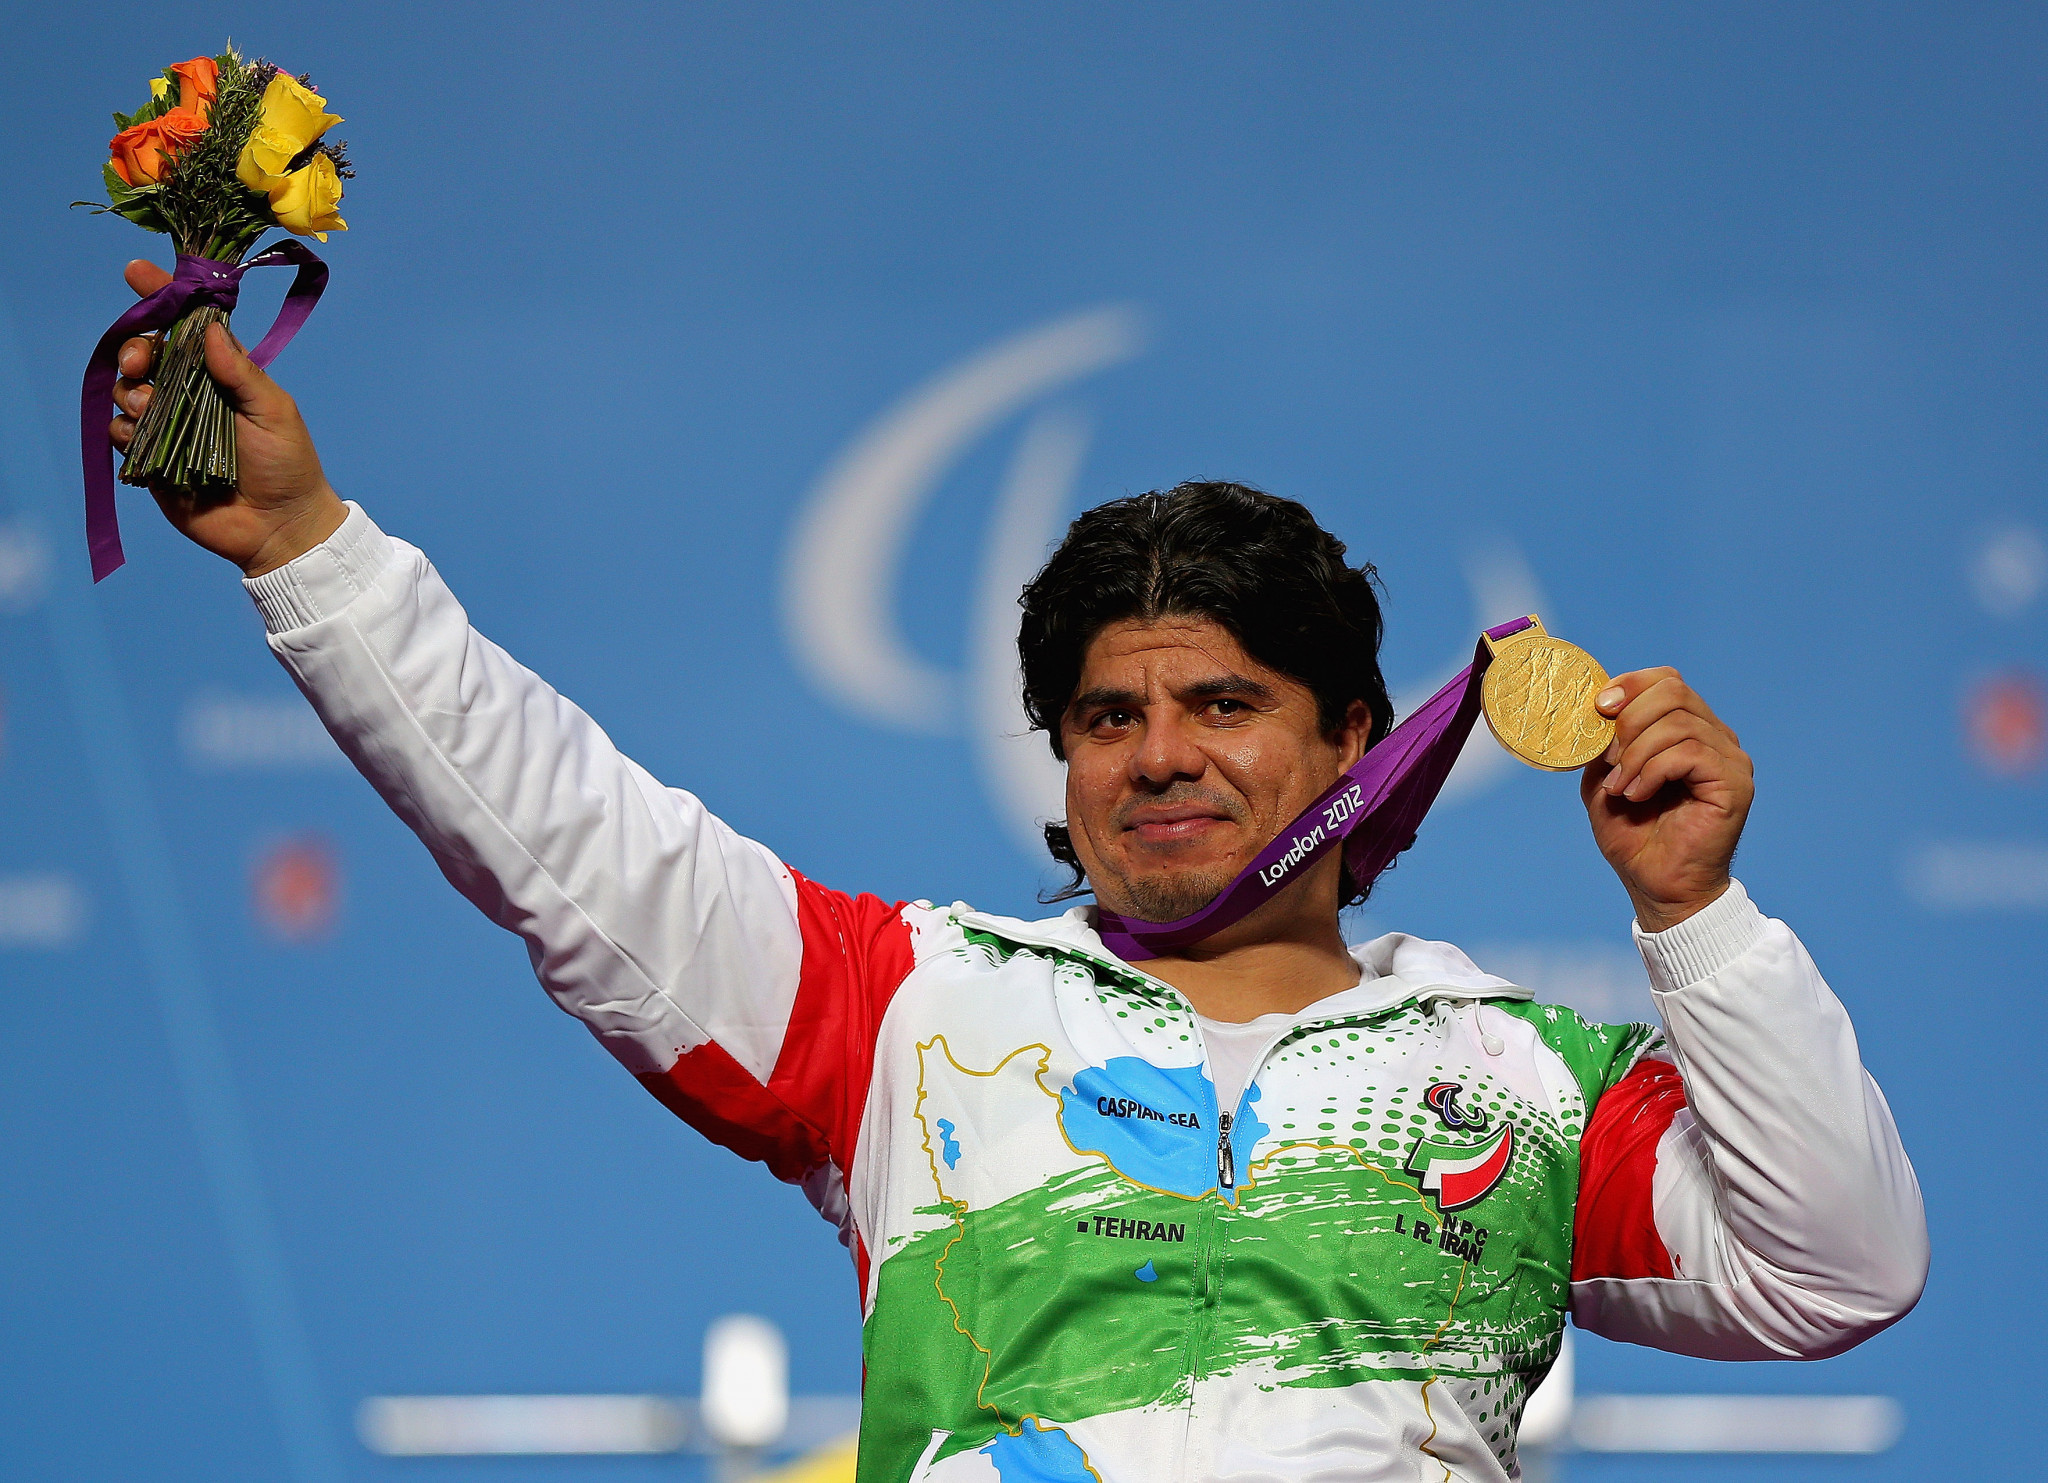 Majid Farzin is one of Iran's most successful Para powerlifters ©Getty Images